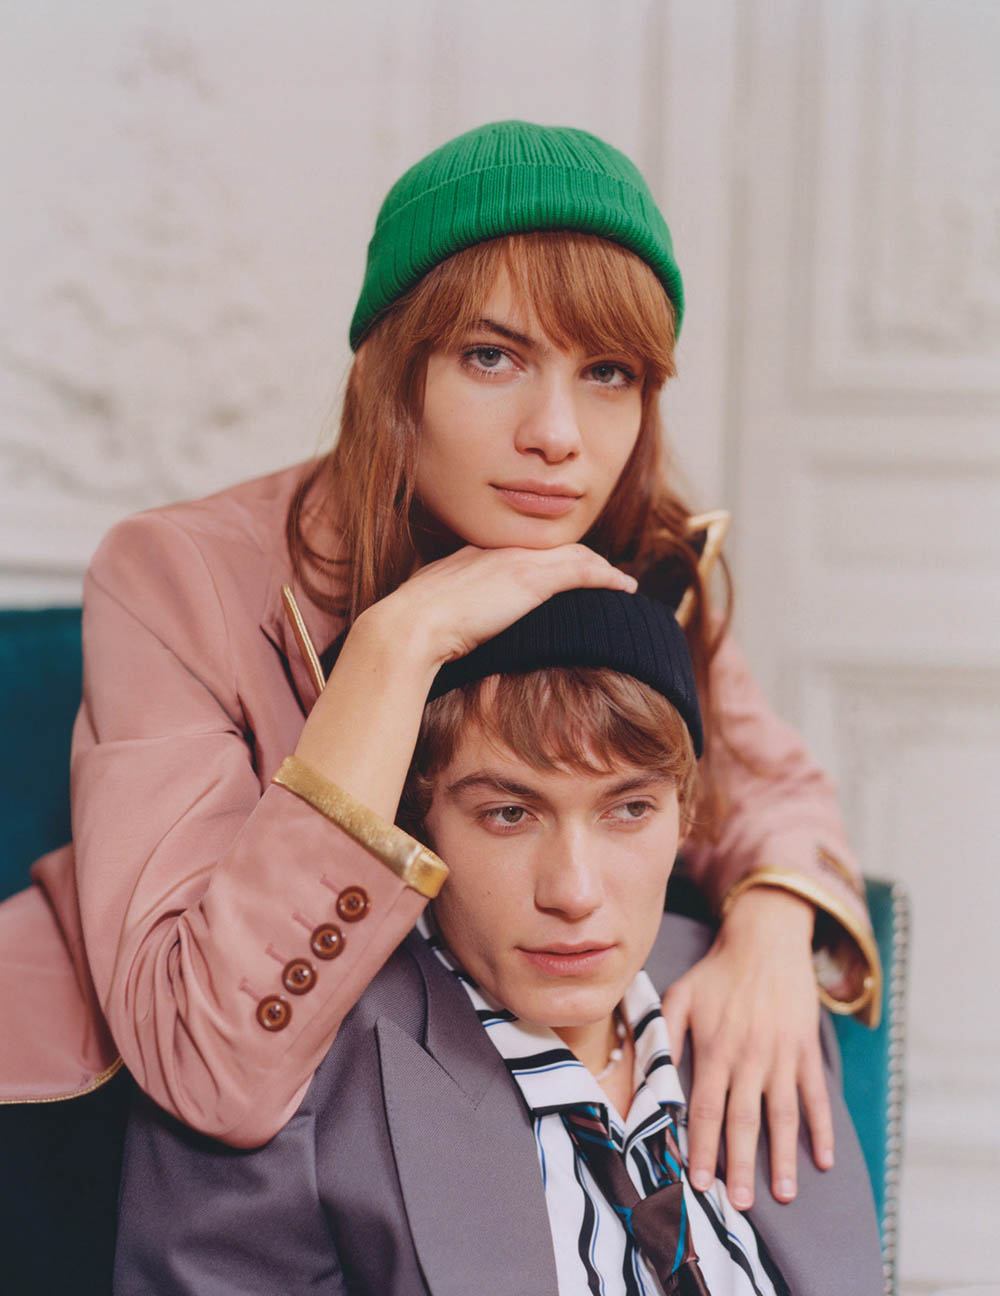 Nina Marker and Anton Thiemke by Ben Parks for Vogue Russia February 2020